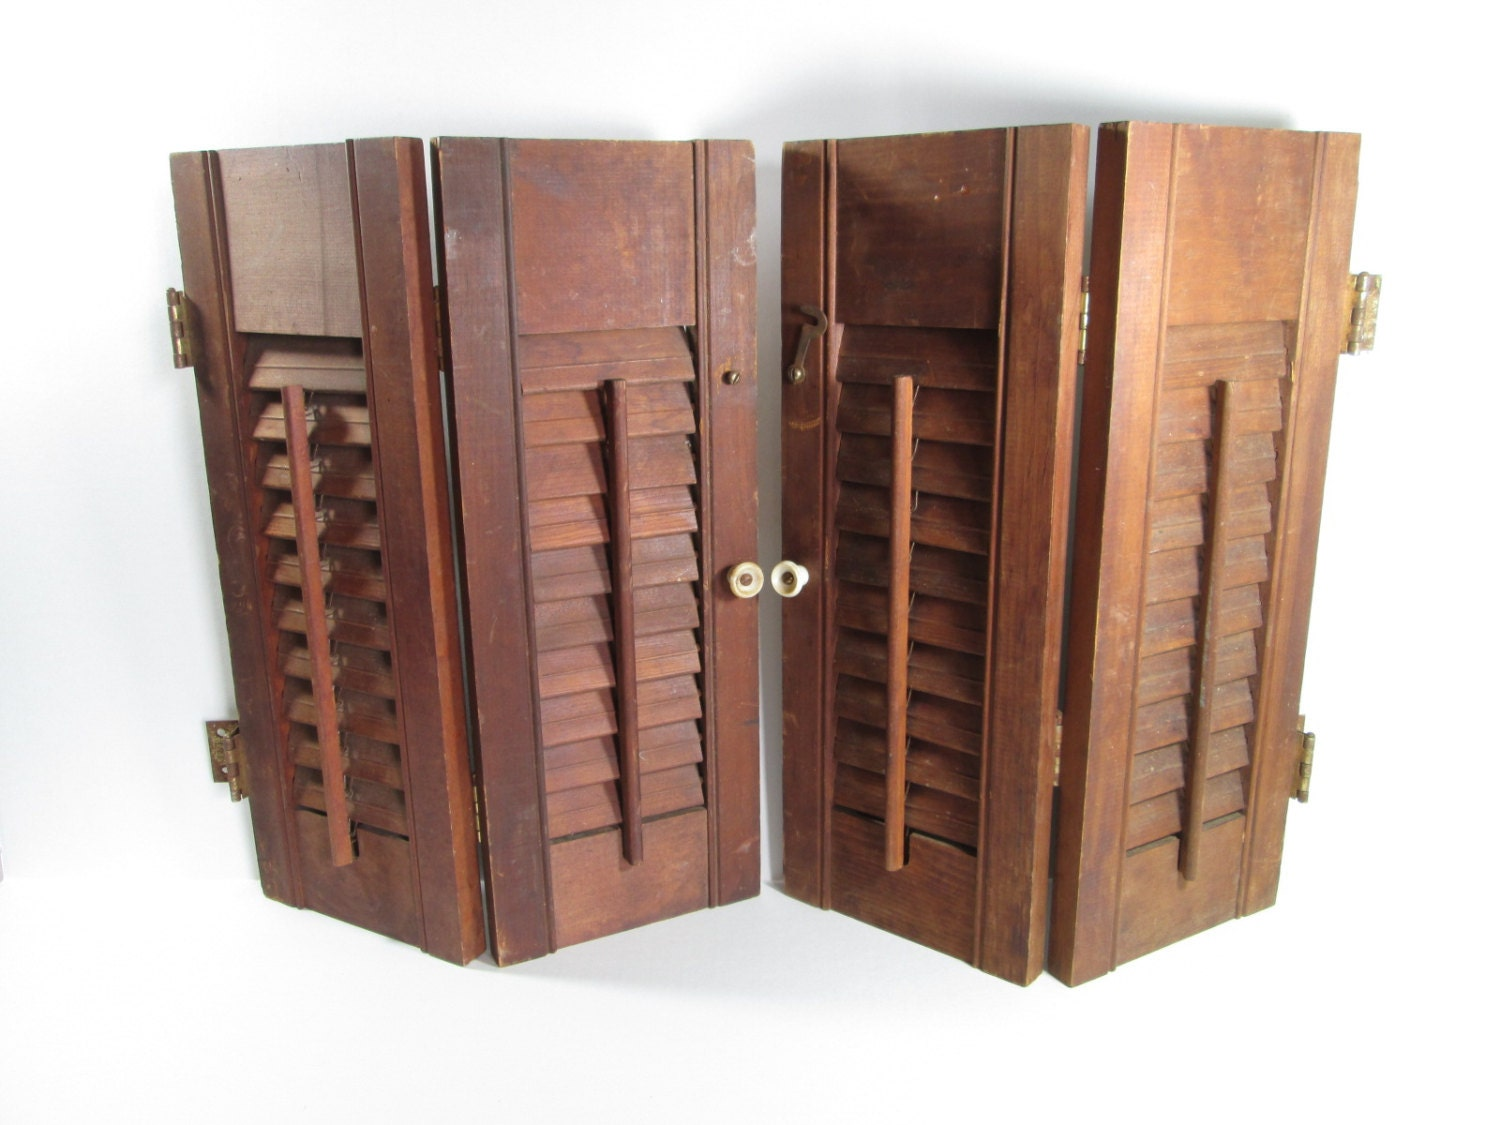 Vintage wooden interior window shutters salvage for 12 window shutters